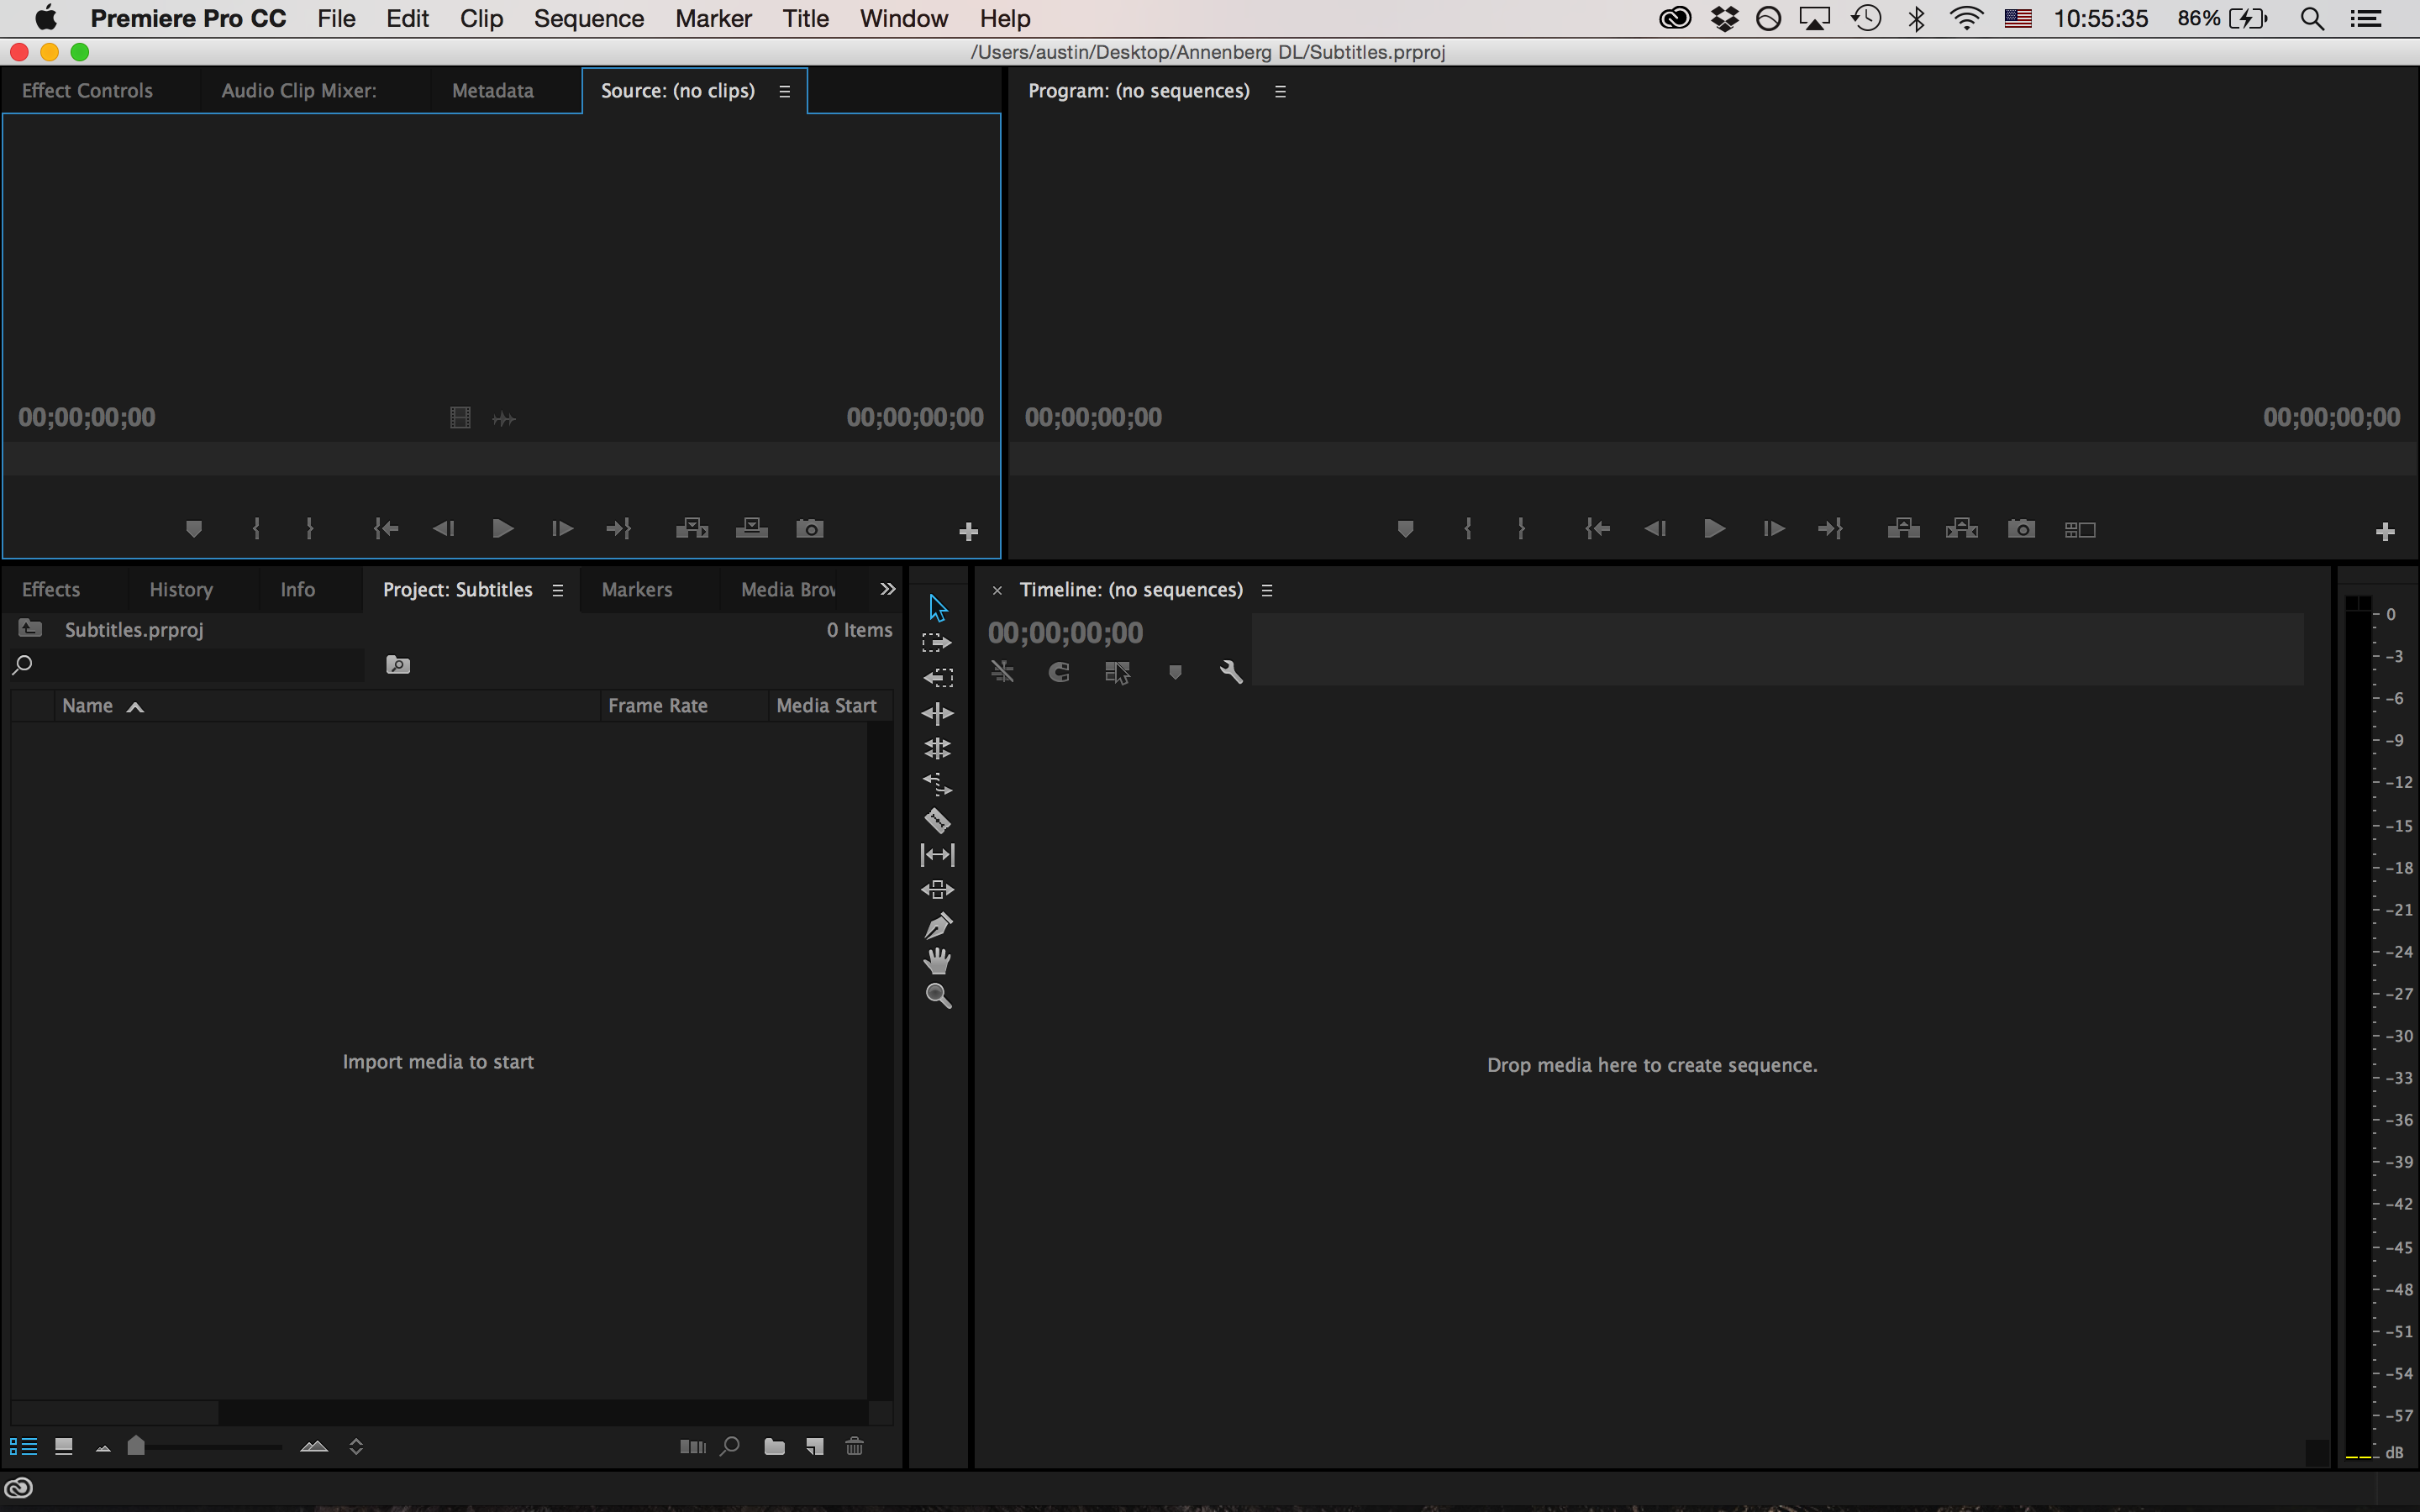 Adobe premiere adding subtitles to video for social media screen shot 2015 09 28 at 105535 am ccuart Image collections